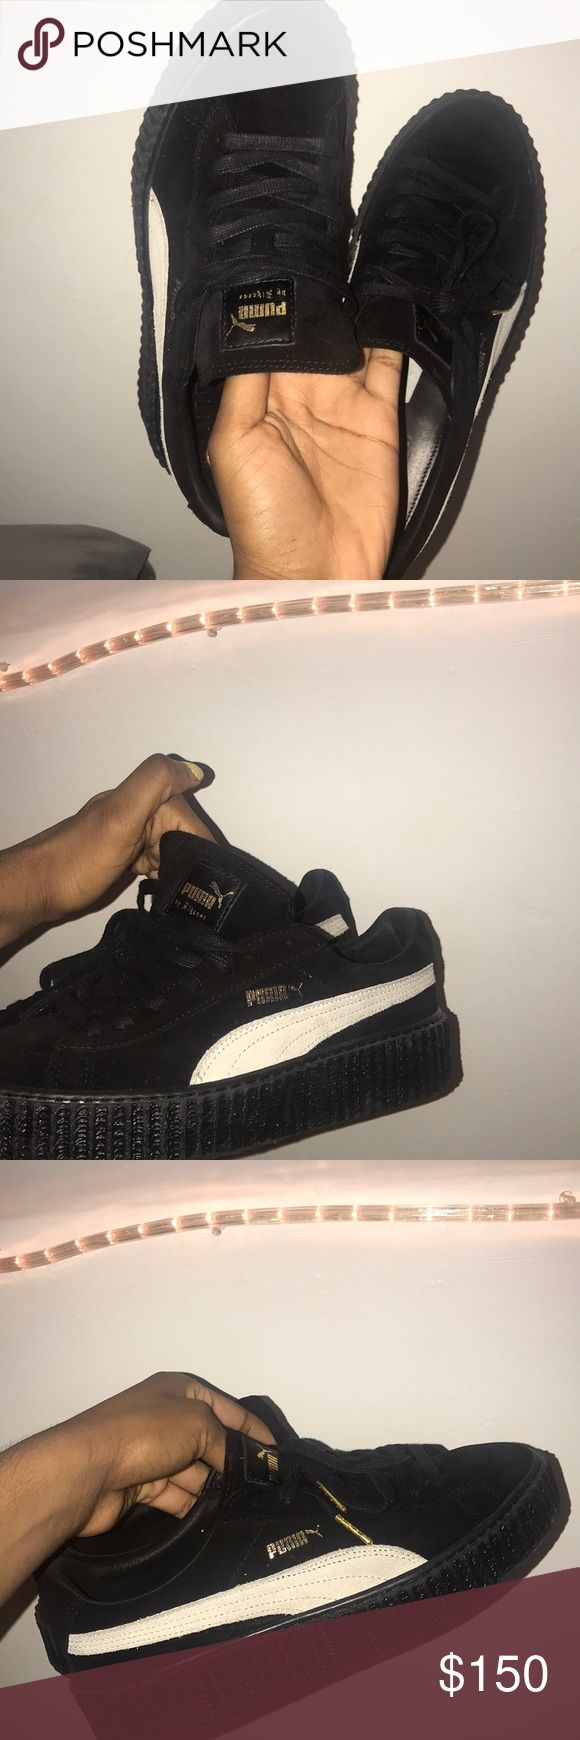 Fenty x Puma creepers Puma creepers by the one and only Rihanna, from her earlier releases. They are in good condition , suede black and white style. I'll negotiate prices if anything. Puma Shoes Sneakers